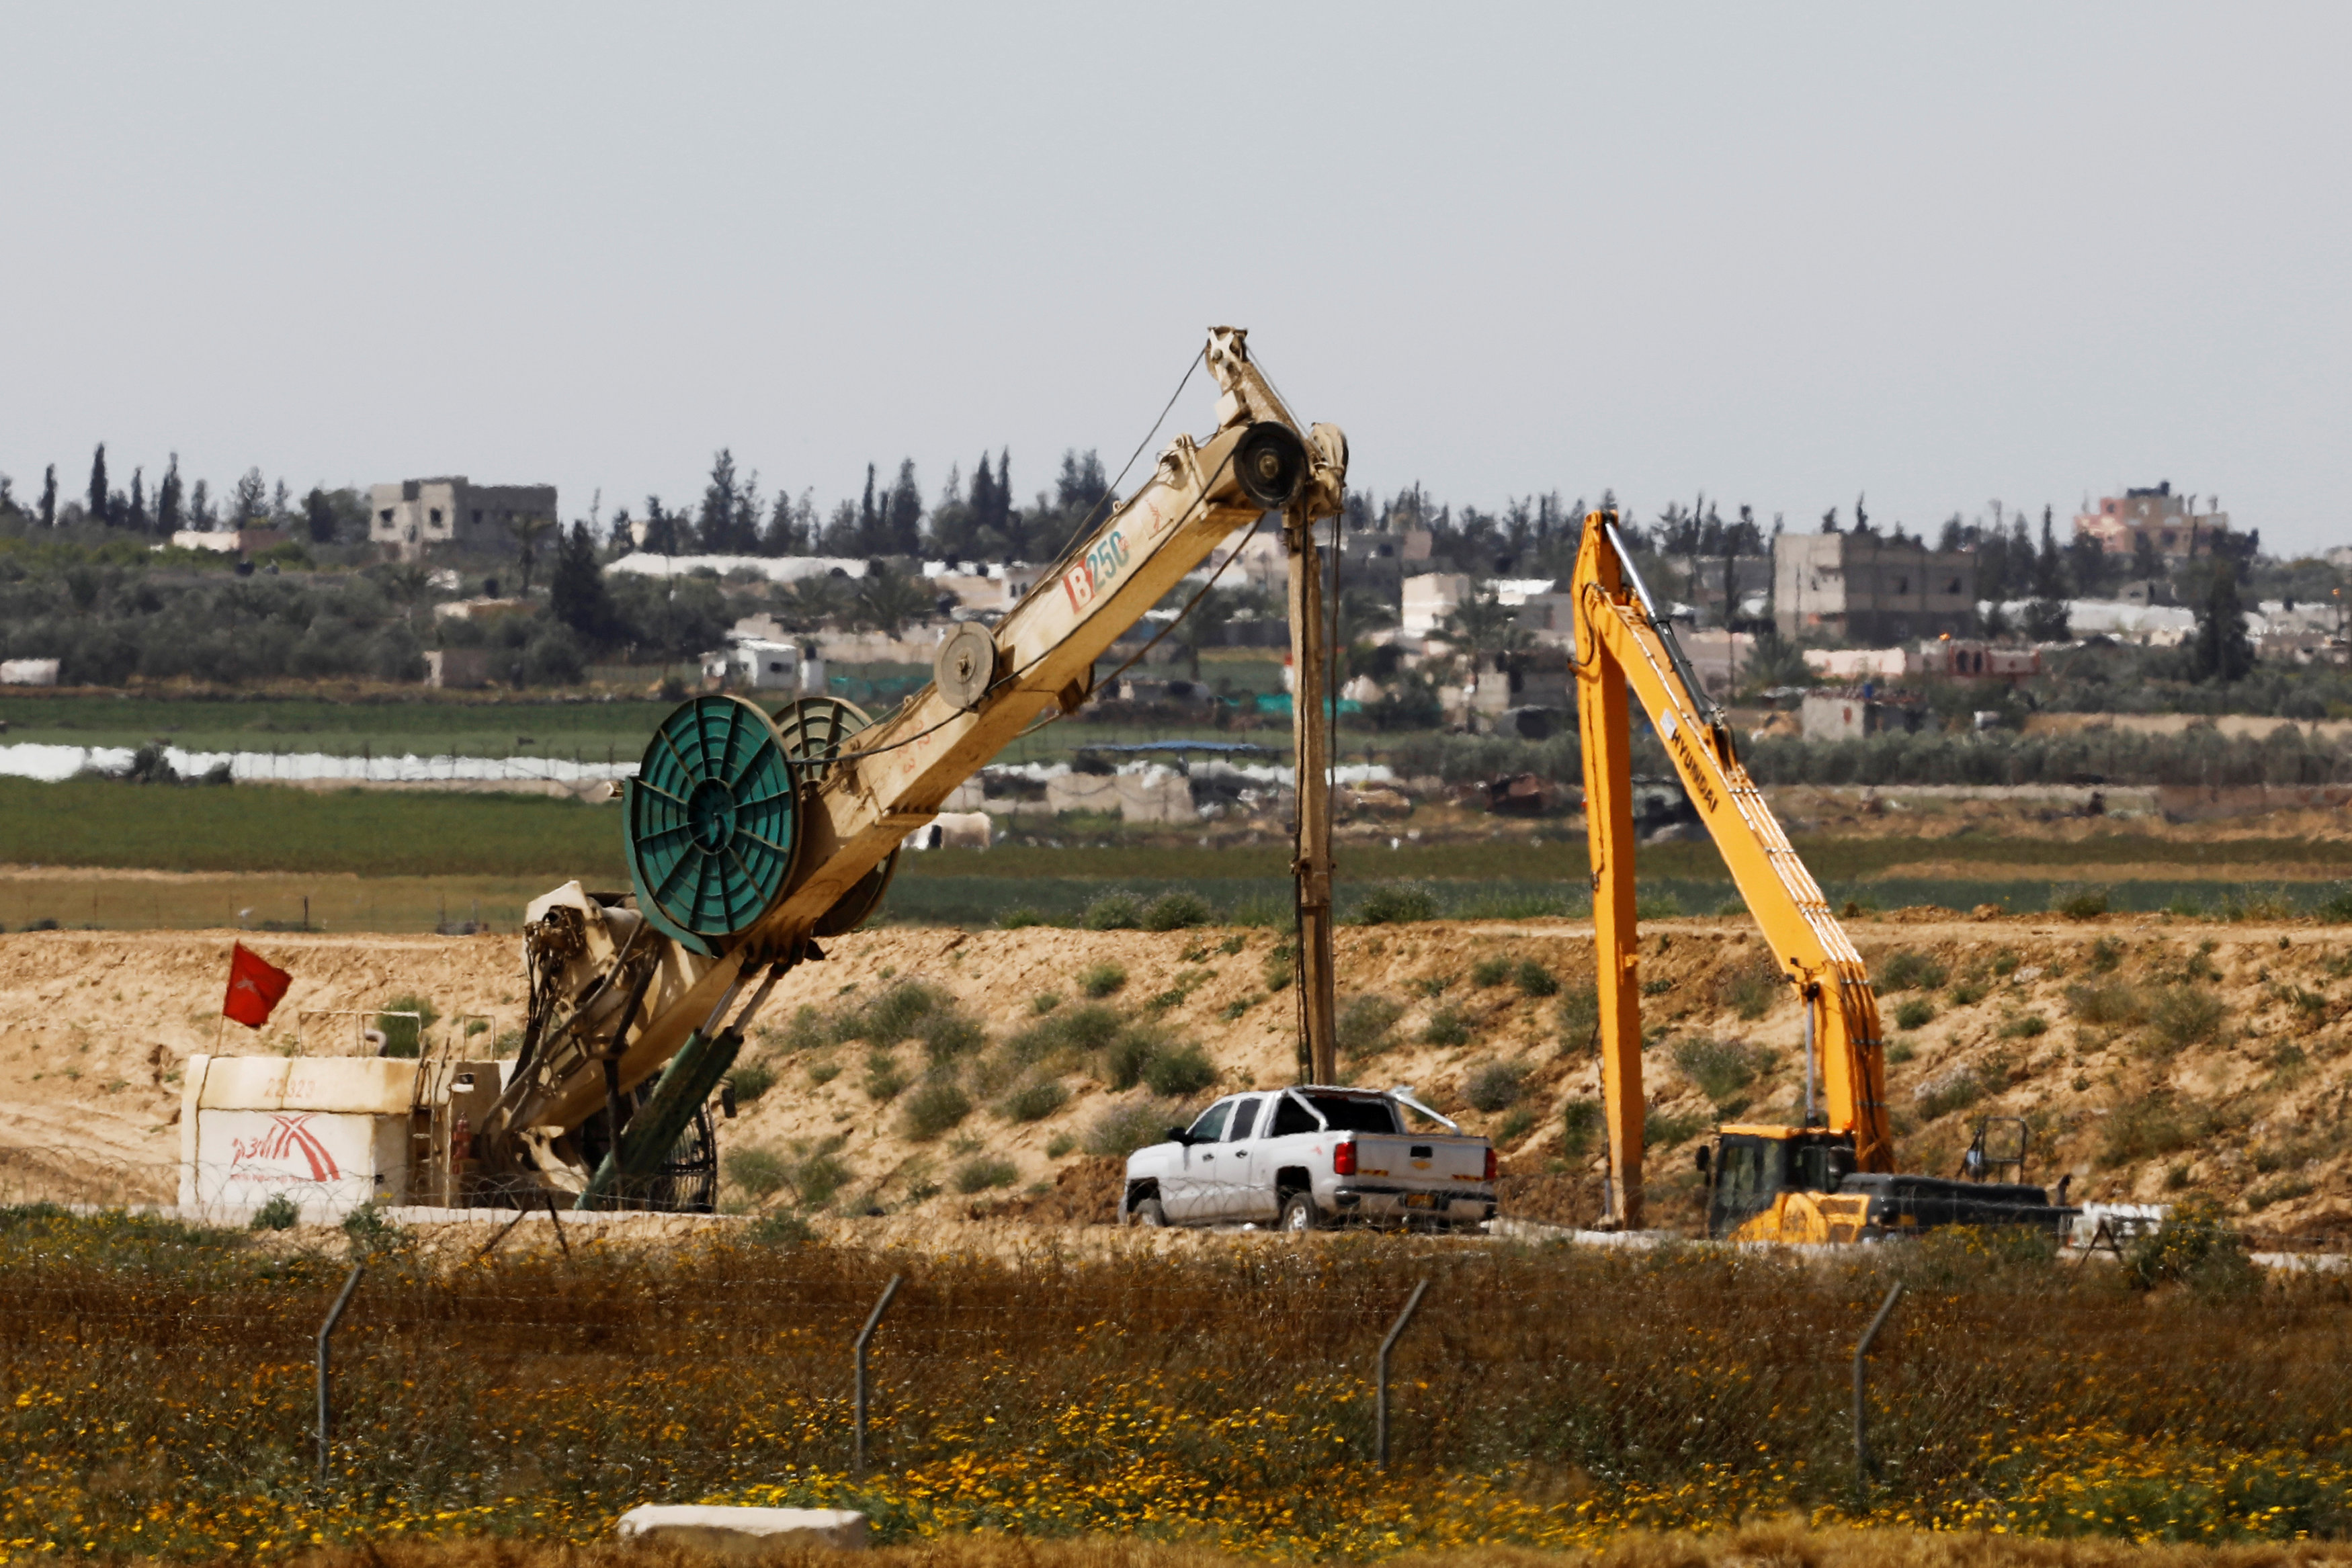 FILE PHOTO: Construction work can be seen on the Israeli side of the border between Israel and the Gaza Strip, Israel March 18, 2018. REUTERS/Amir Cohen/File Photo